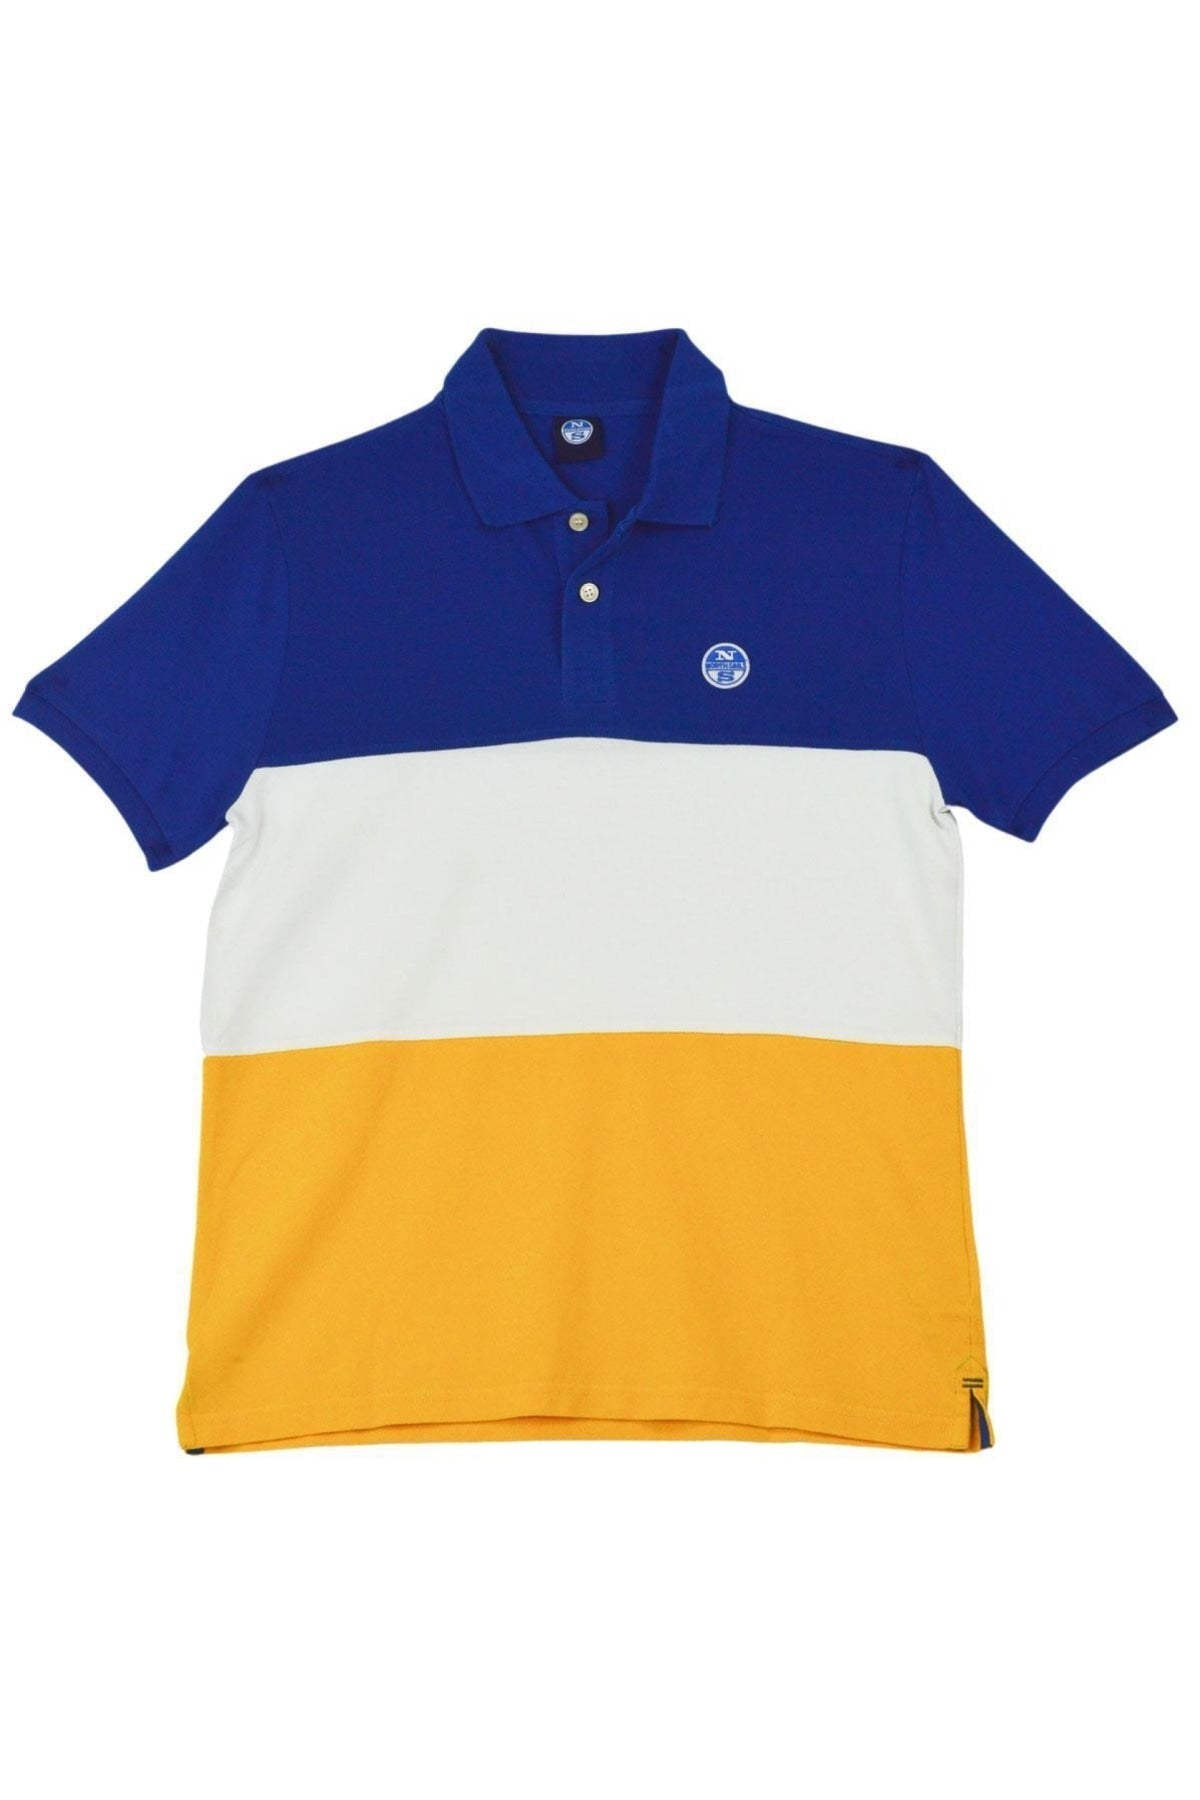 North Sails North Sails Cotton Pique Polo Shirt | S / Red / Legacy Secret Label